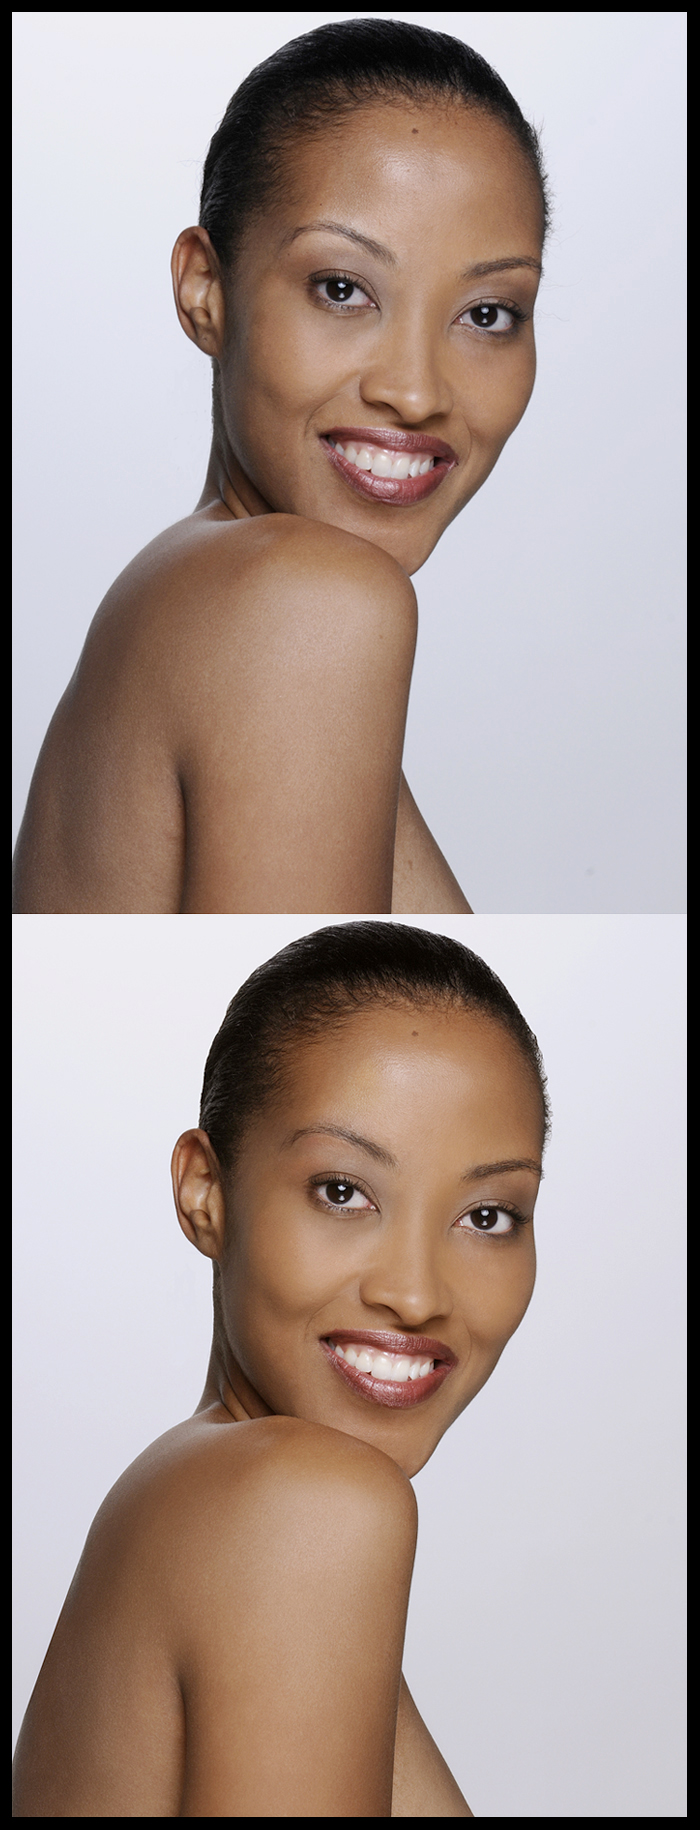 May 24, 2009 Photo © Bruce Talbot Basic beauty retouching - Even out skin tones, blemish removal, general touch ups - 1 hour.